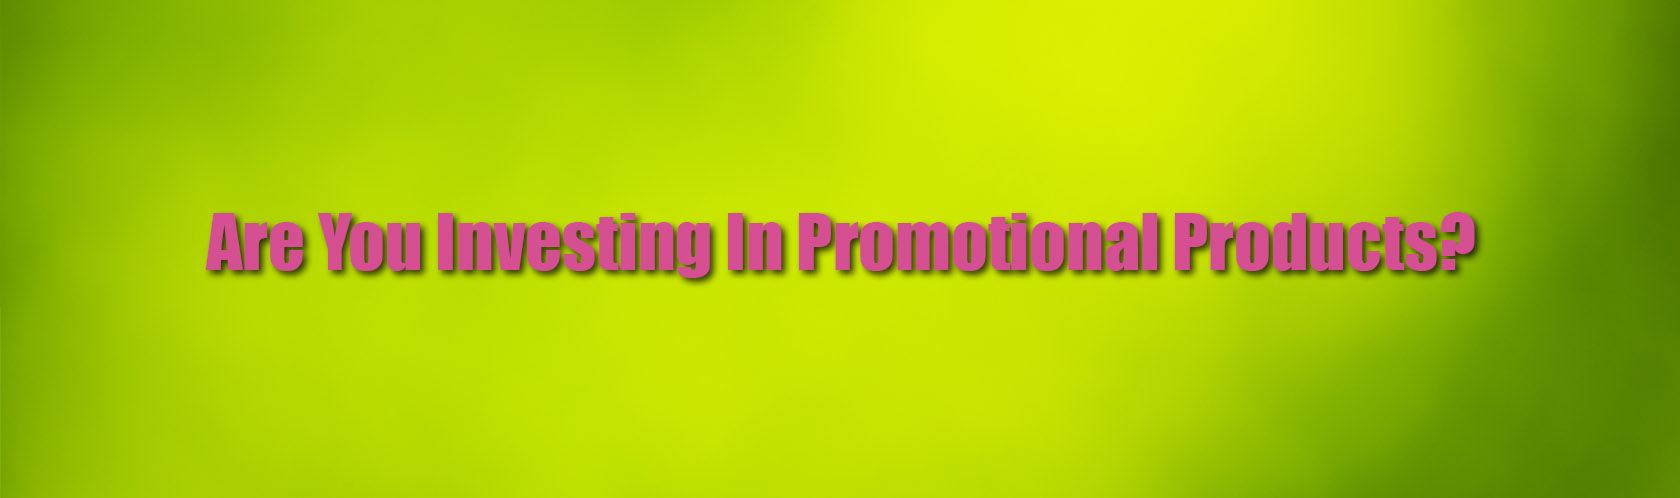 Are You Investing In Promotional Products? Here Are 4 Reasons Why You Should!